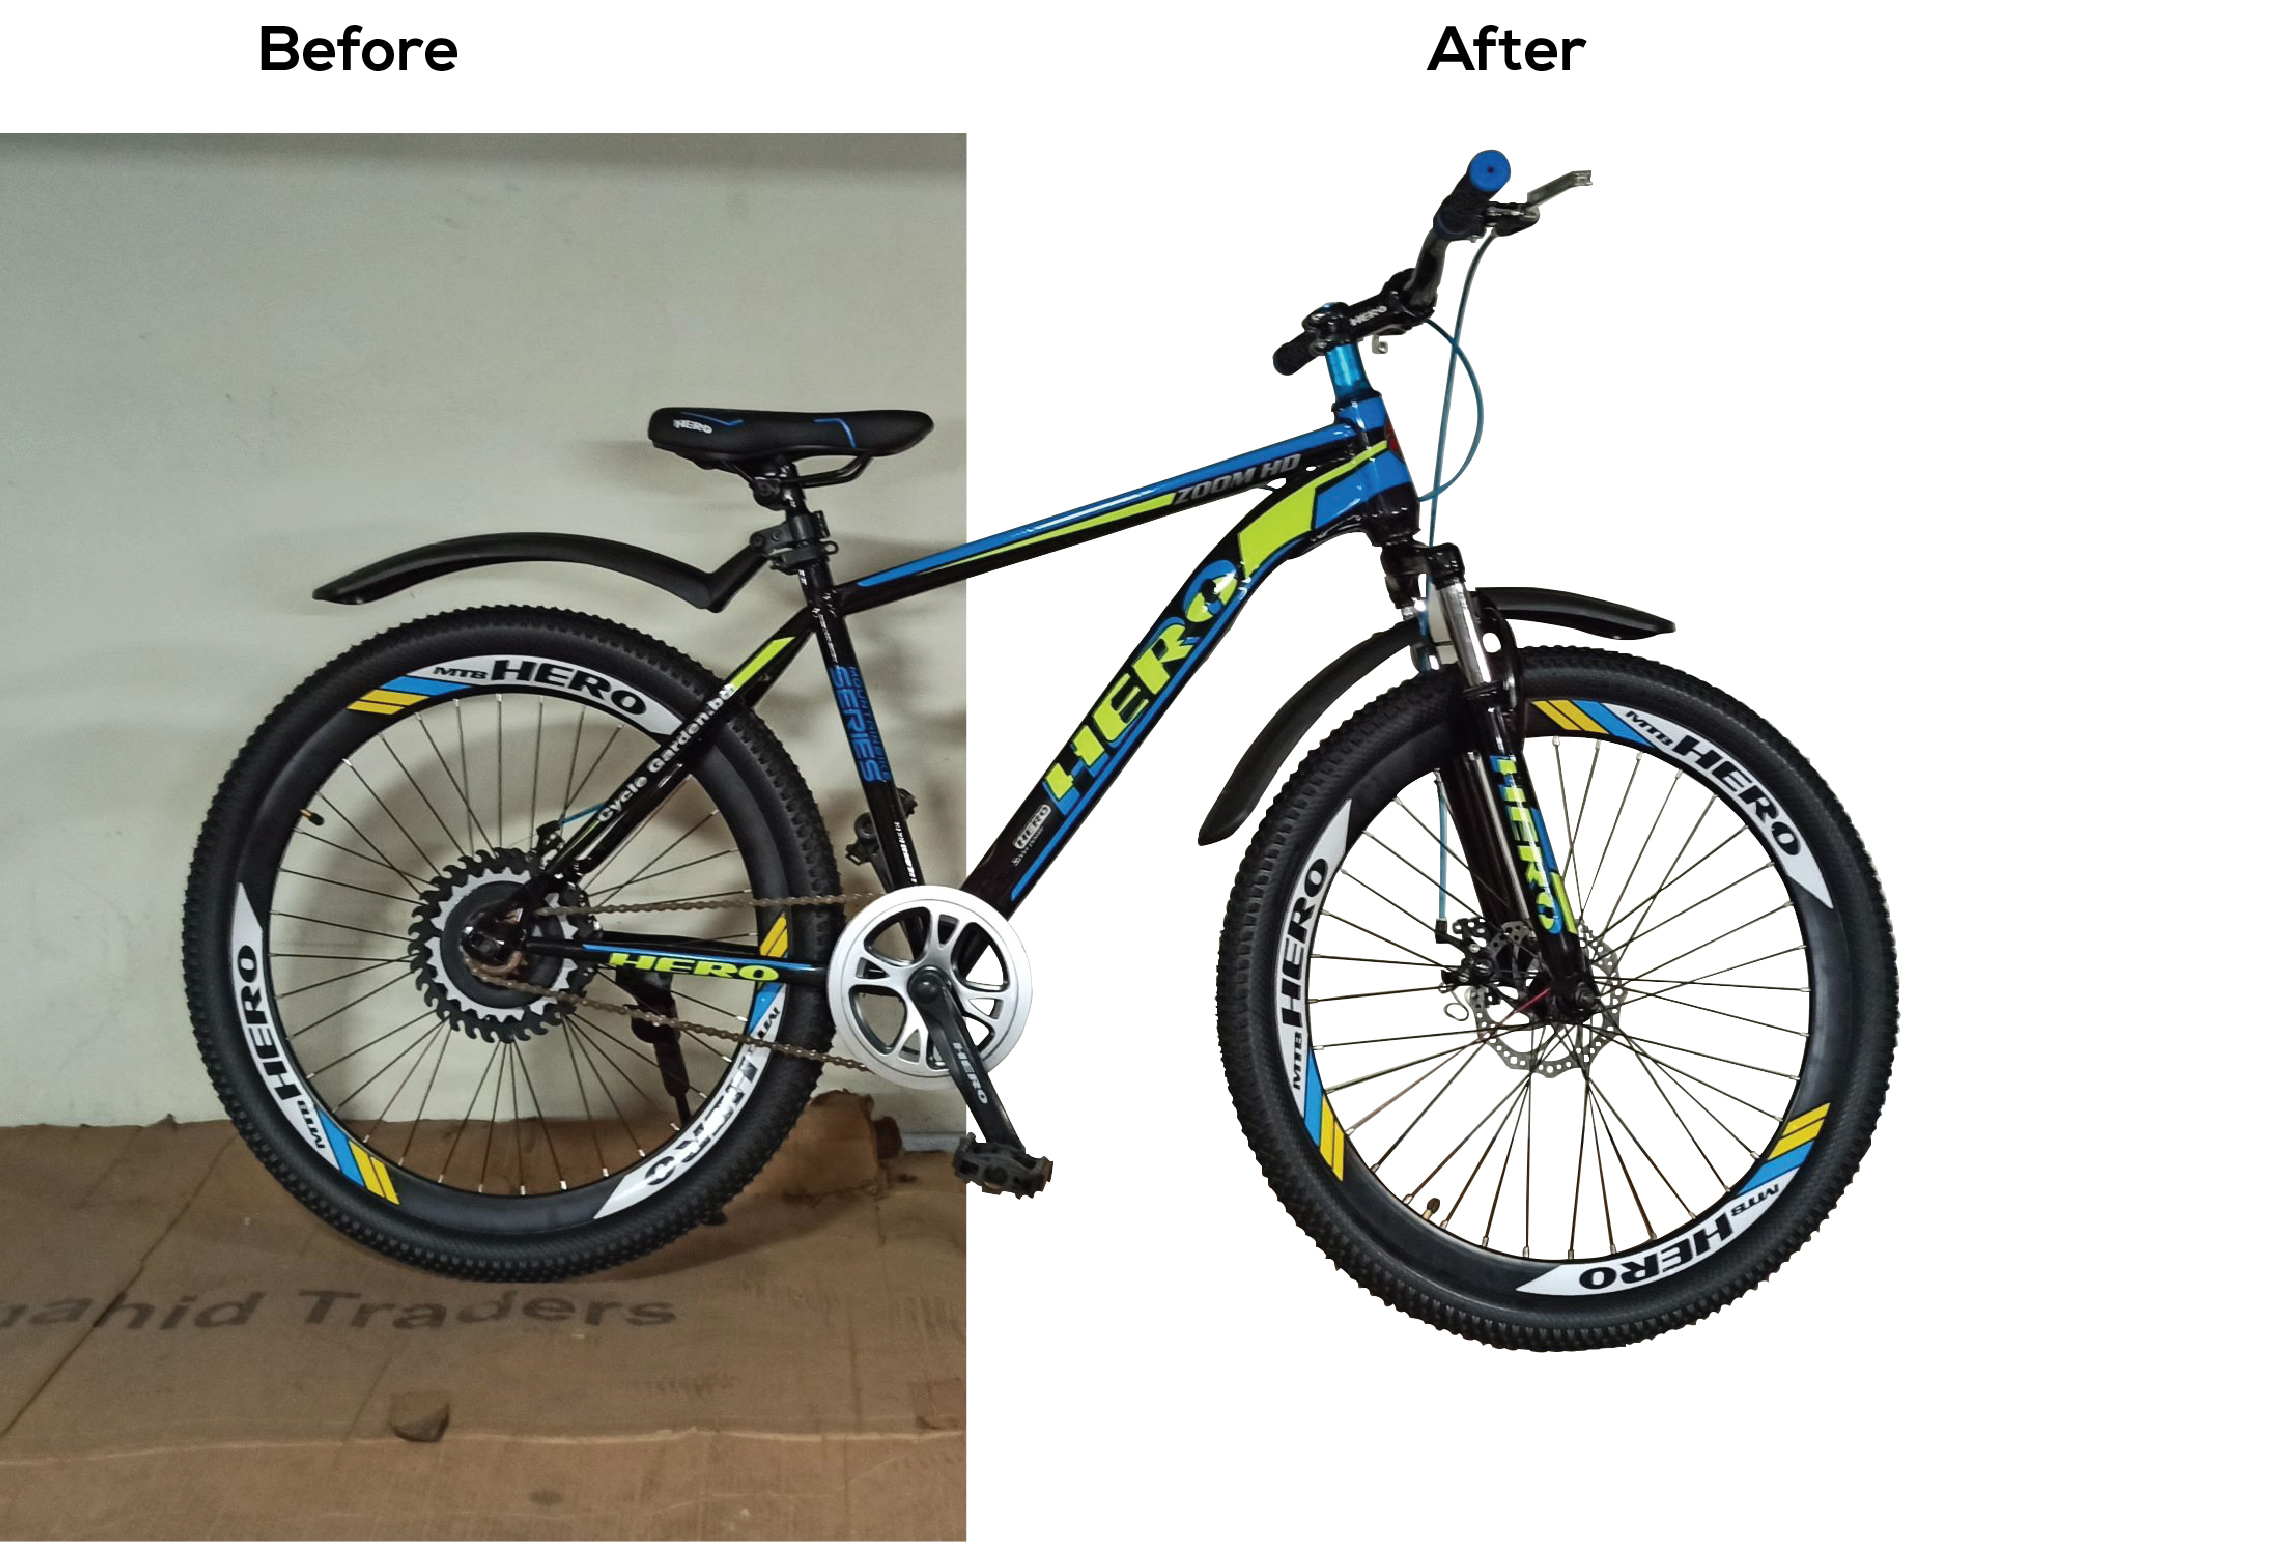 Image background remove or object remove in 24 hour